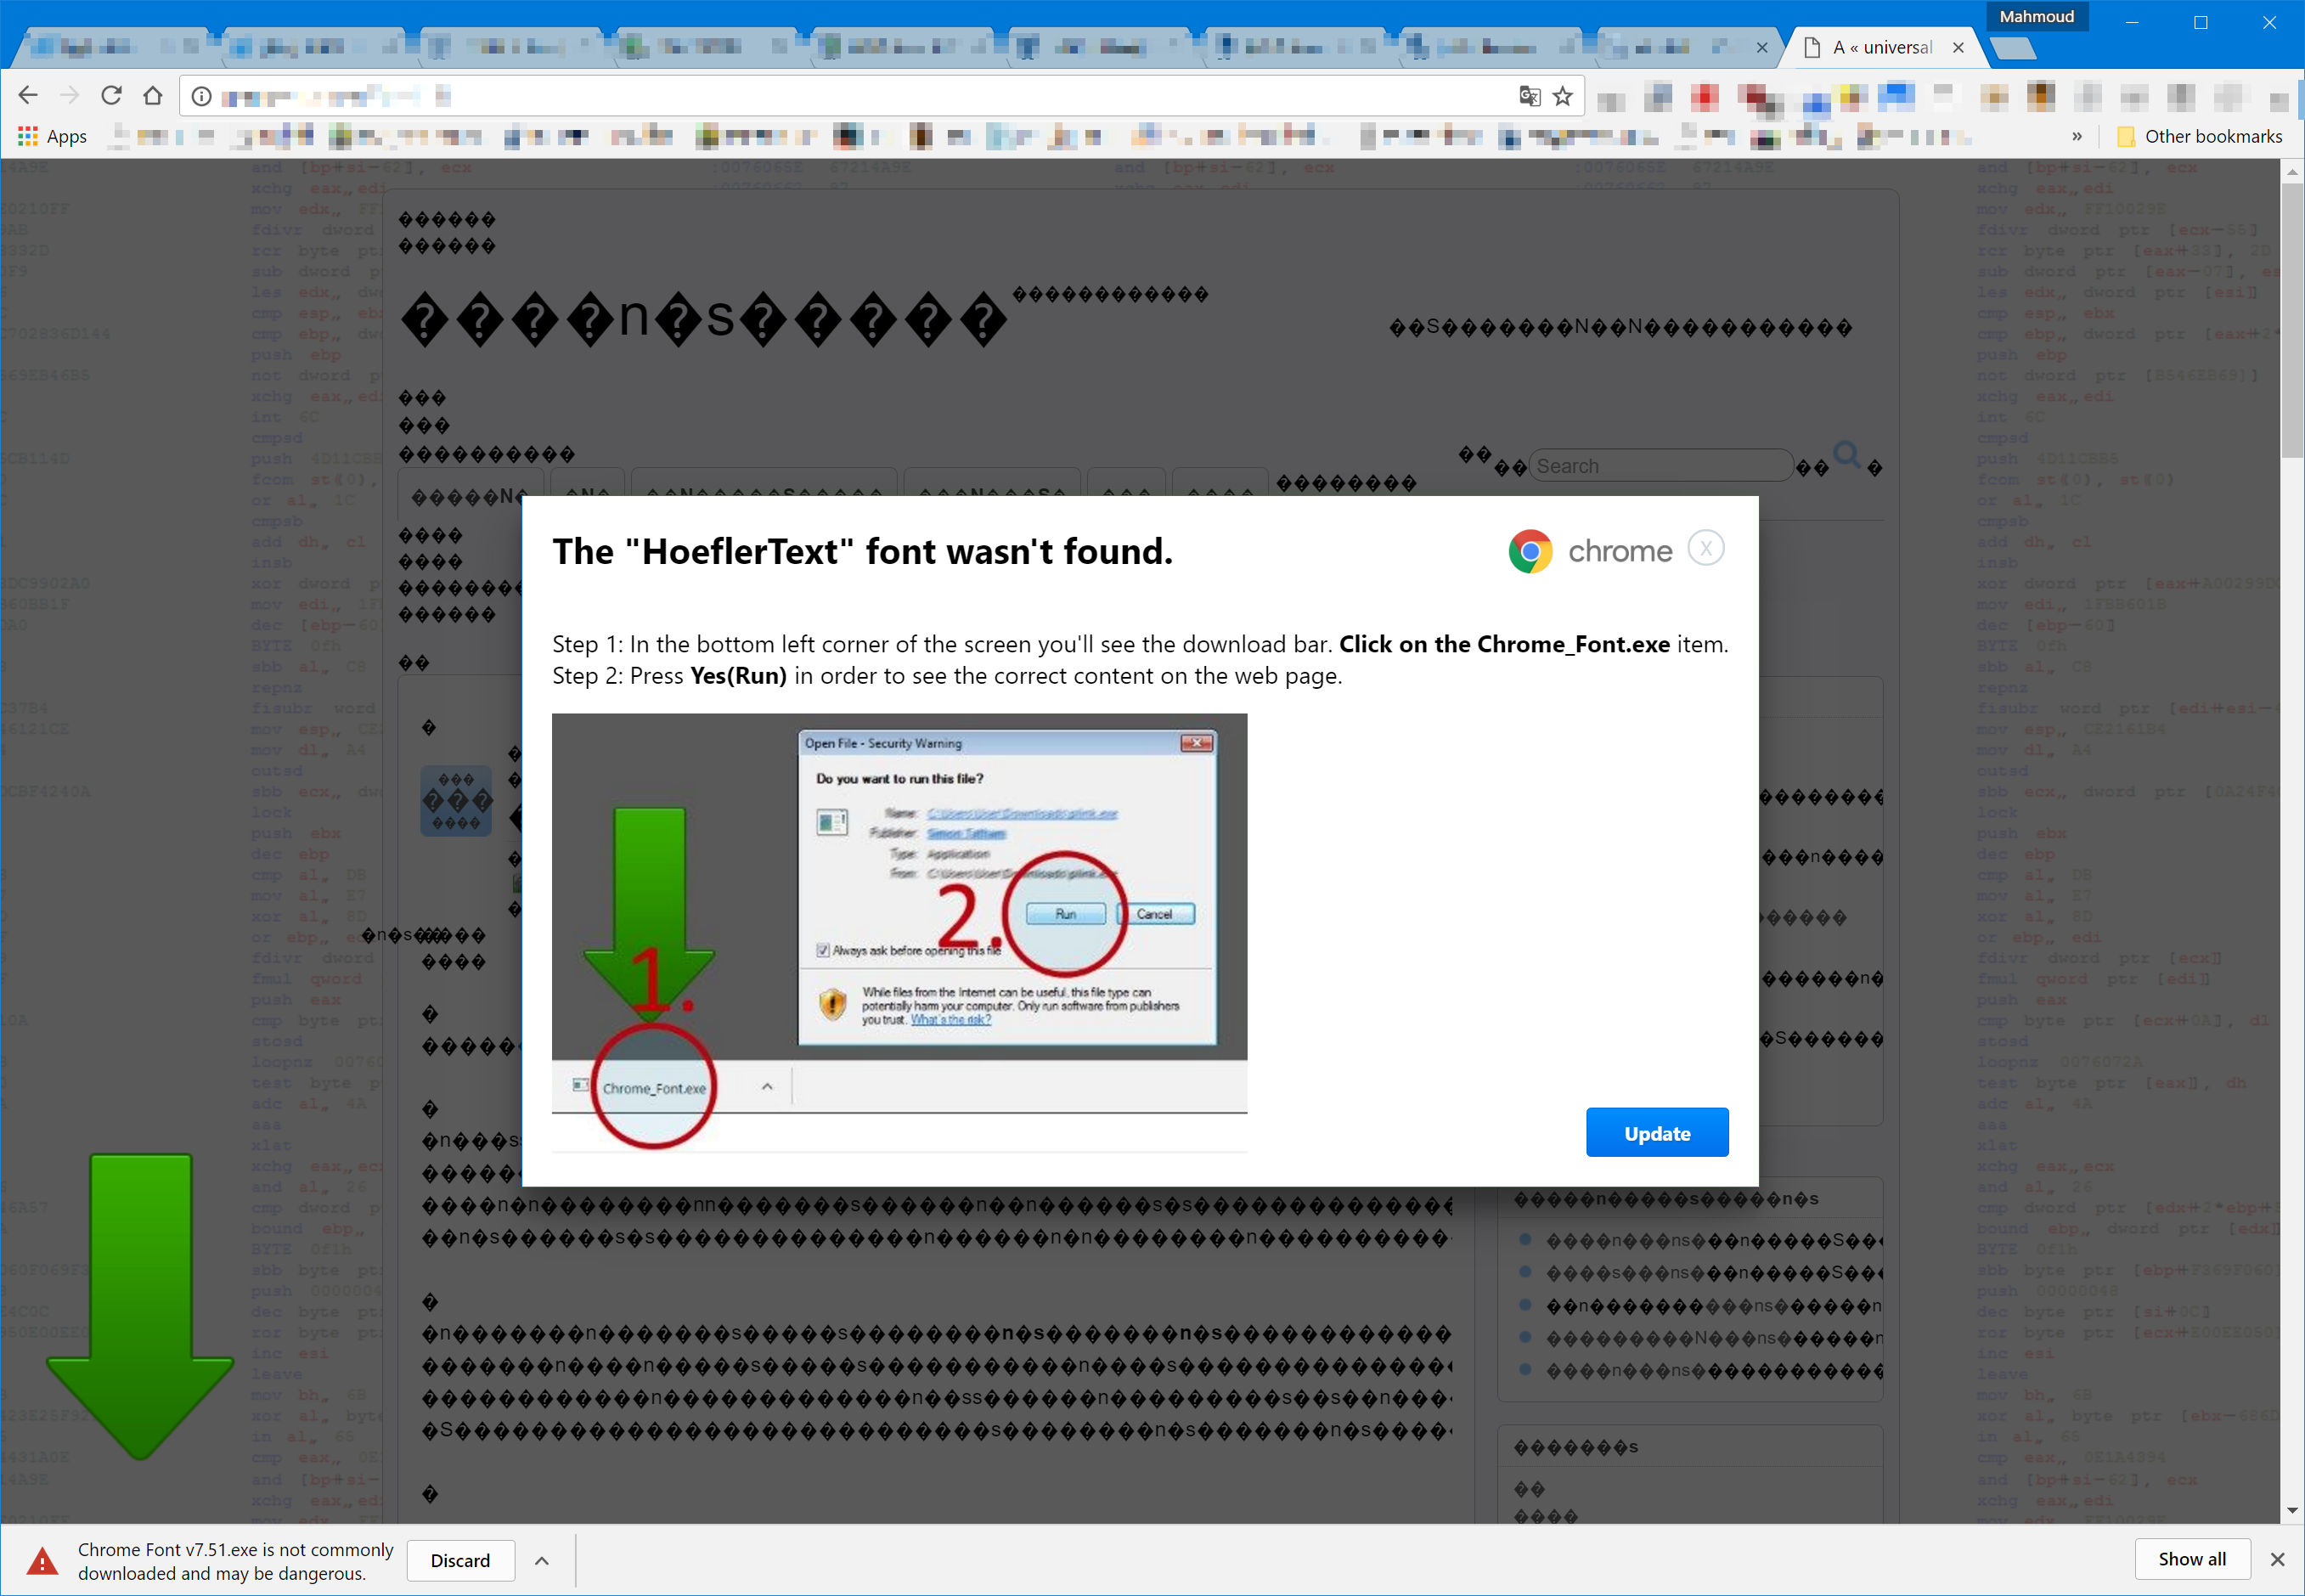 Chrome Users on Windows, Mac Being Targeted by 'Font Wasn't Found